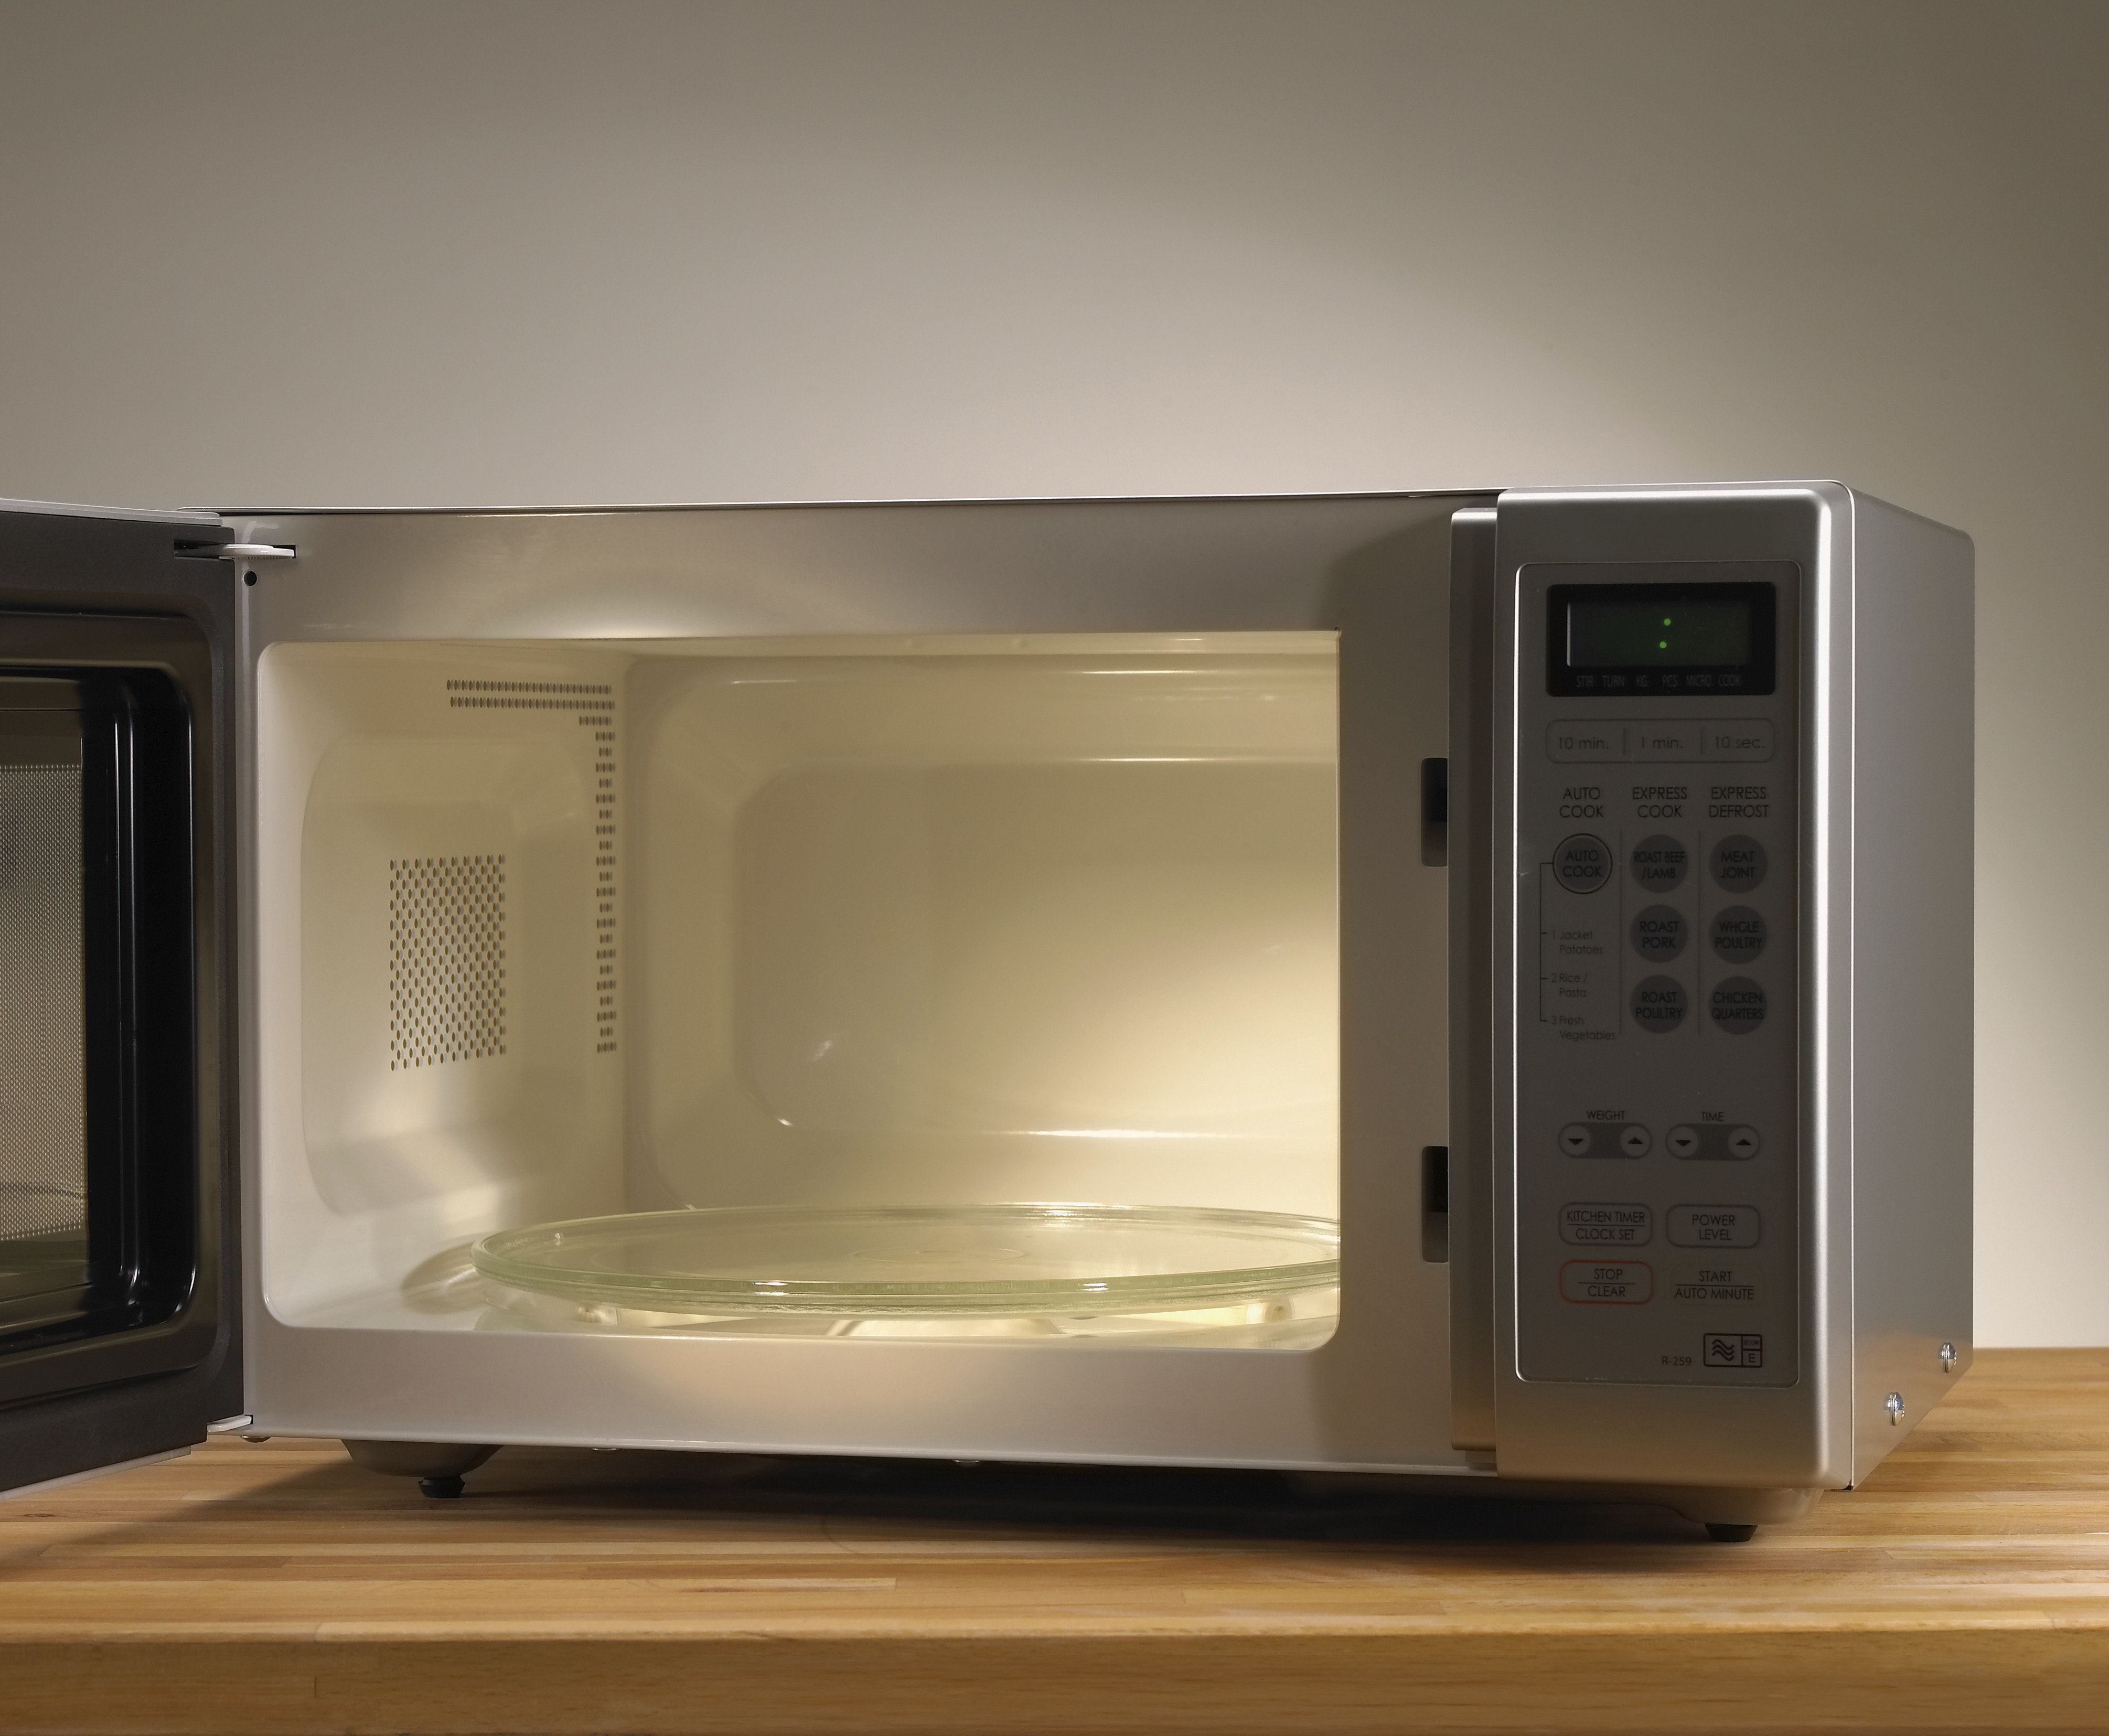 put in the microwave